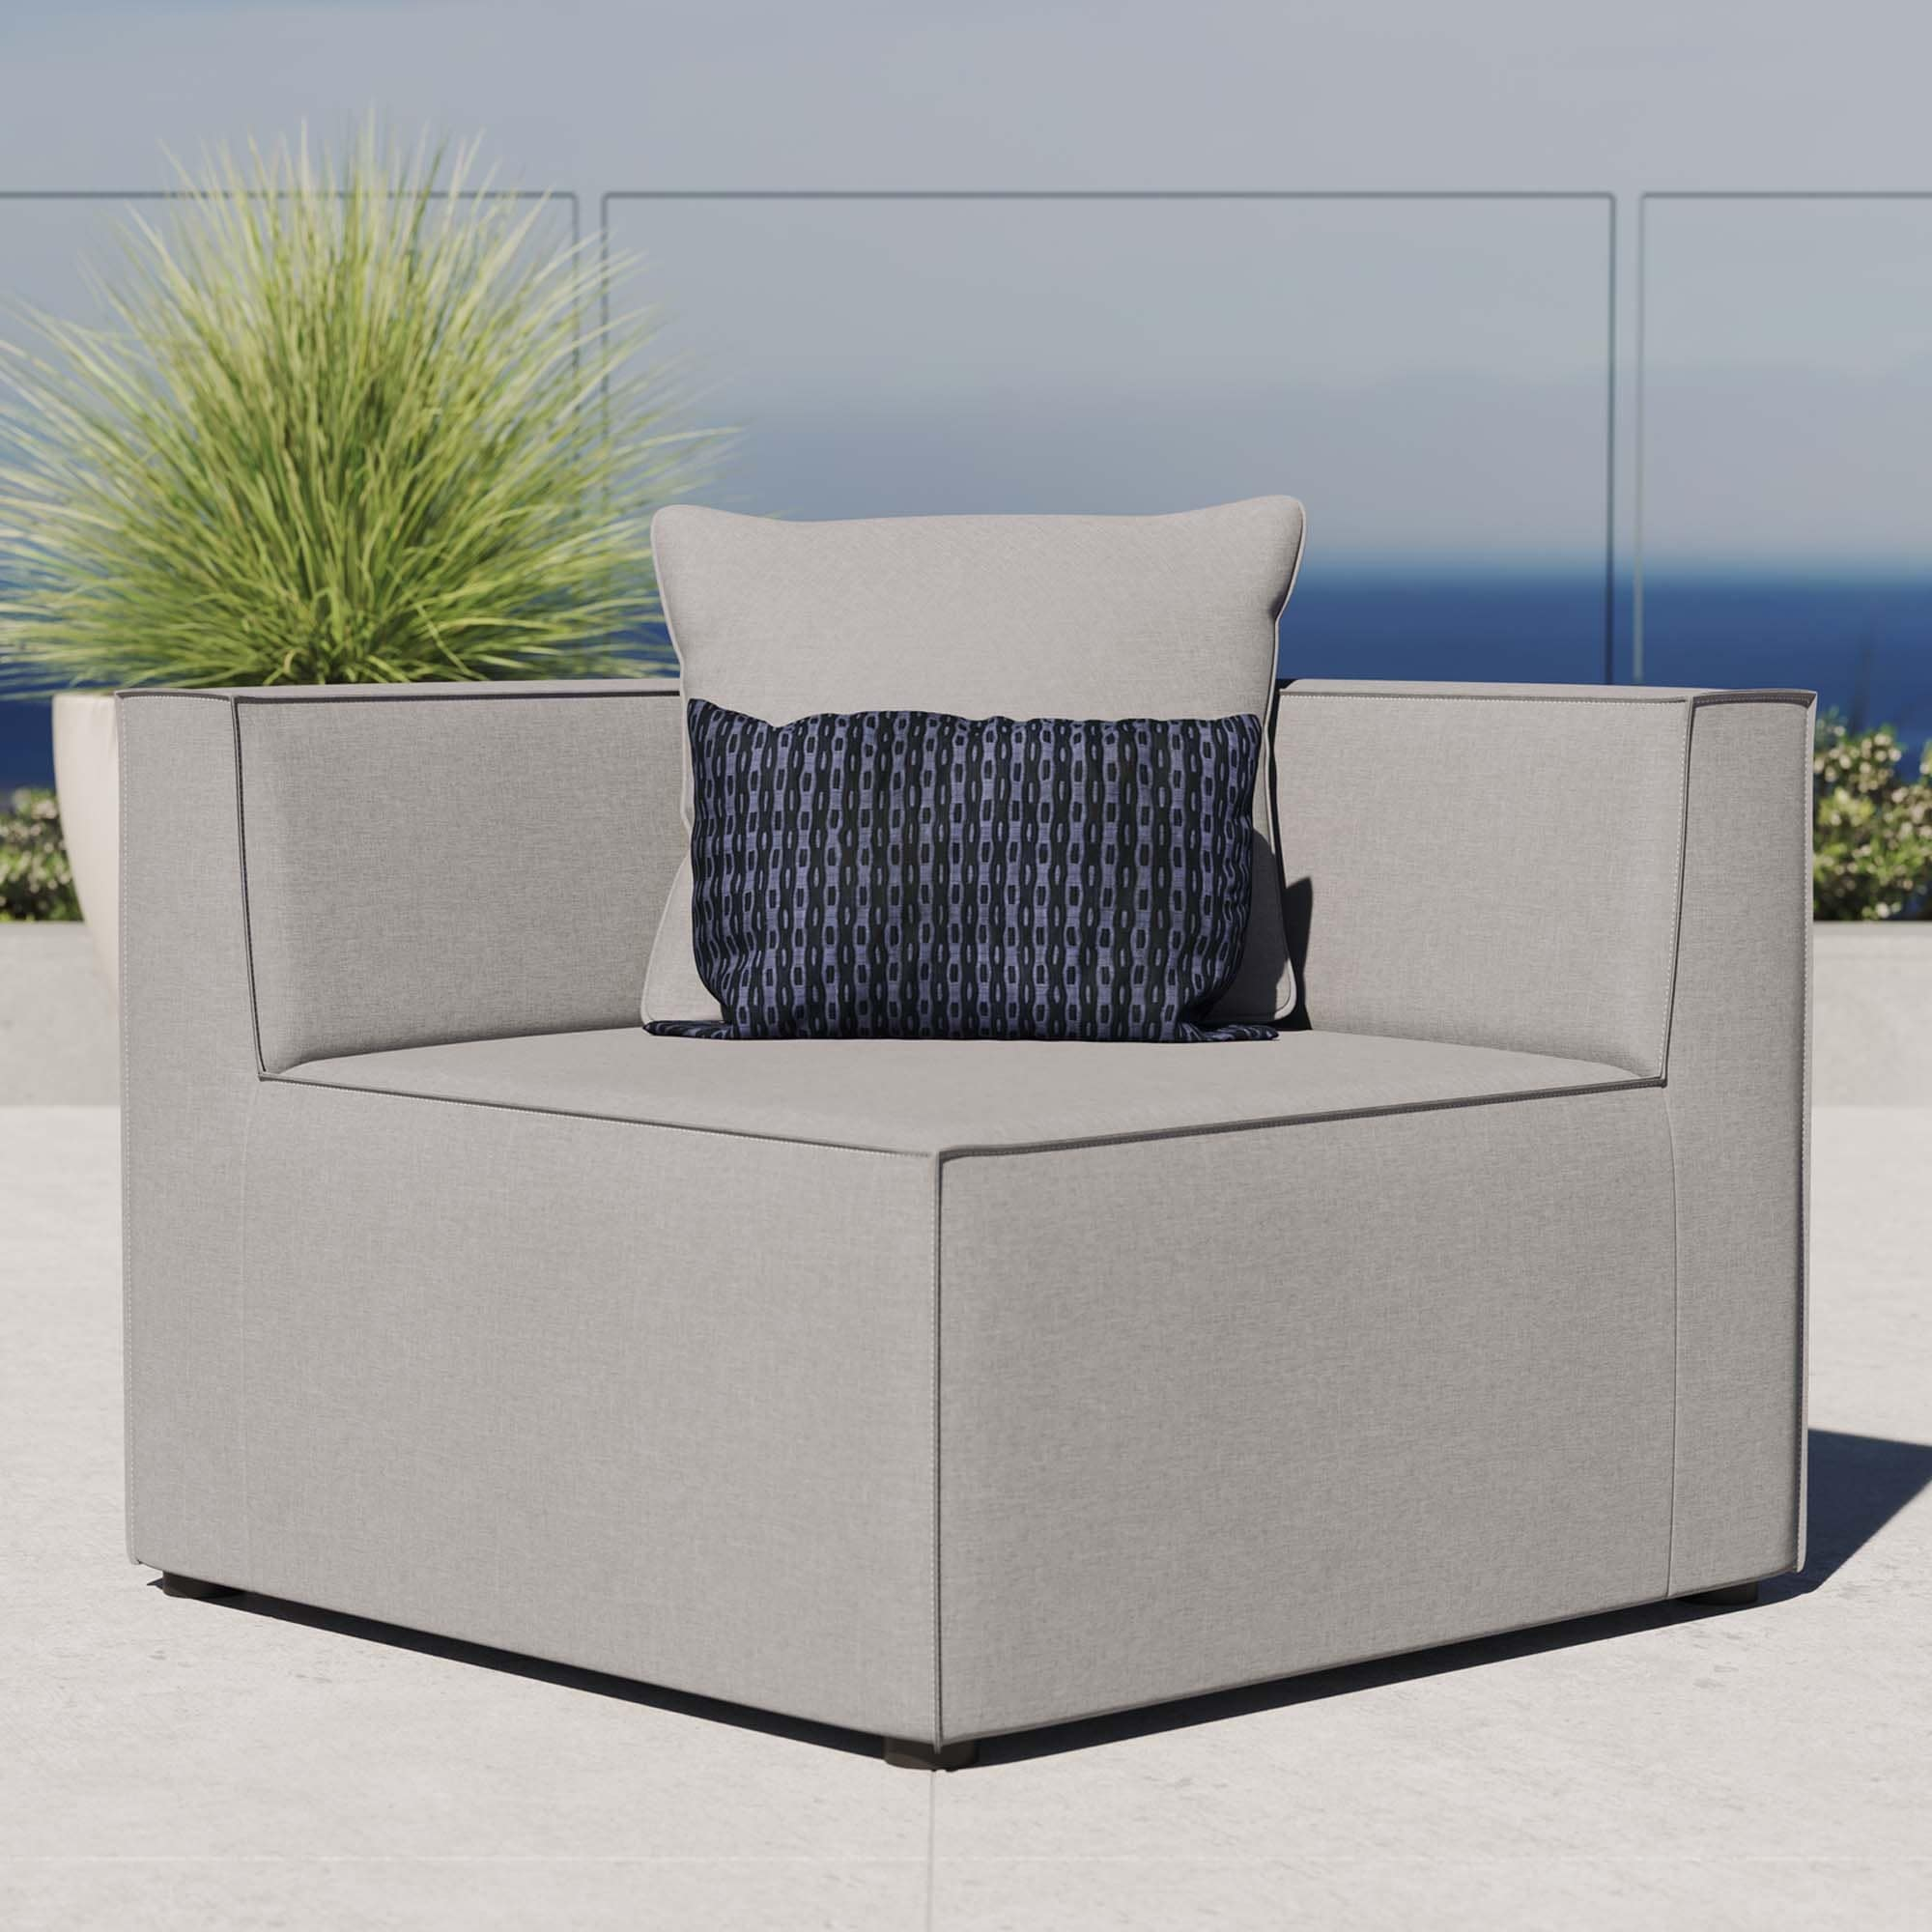 Saybrook Outdoor Patio Upholstered Sectional Sofa Corner Chair Overstock 32383715 Turquoise